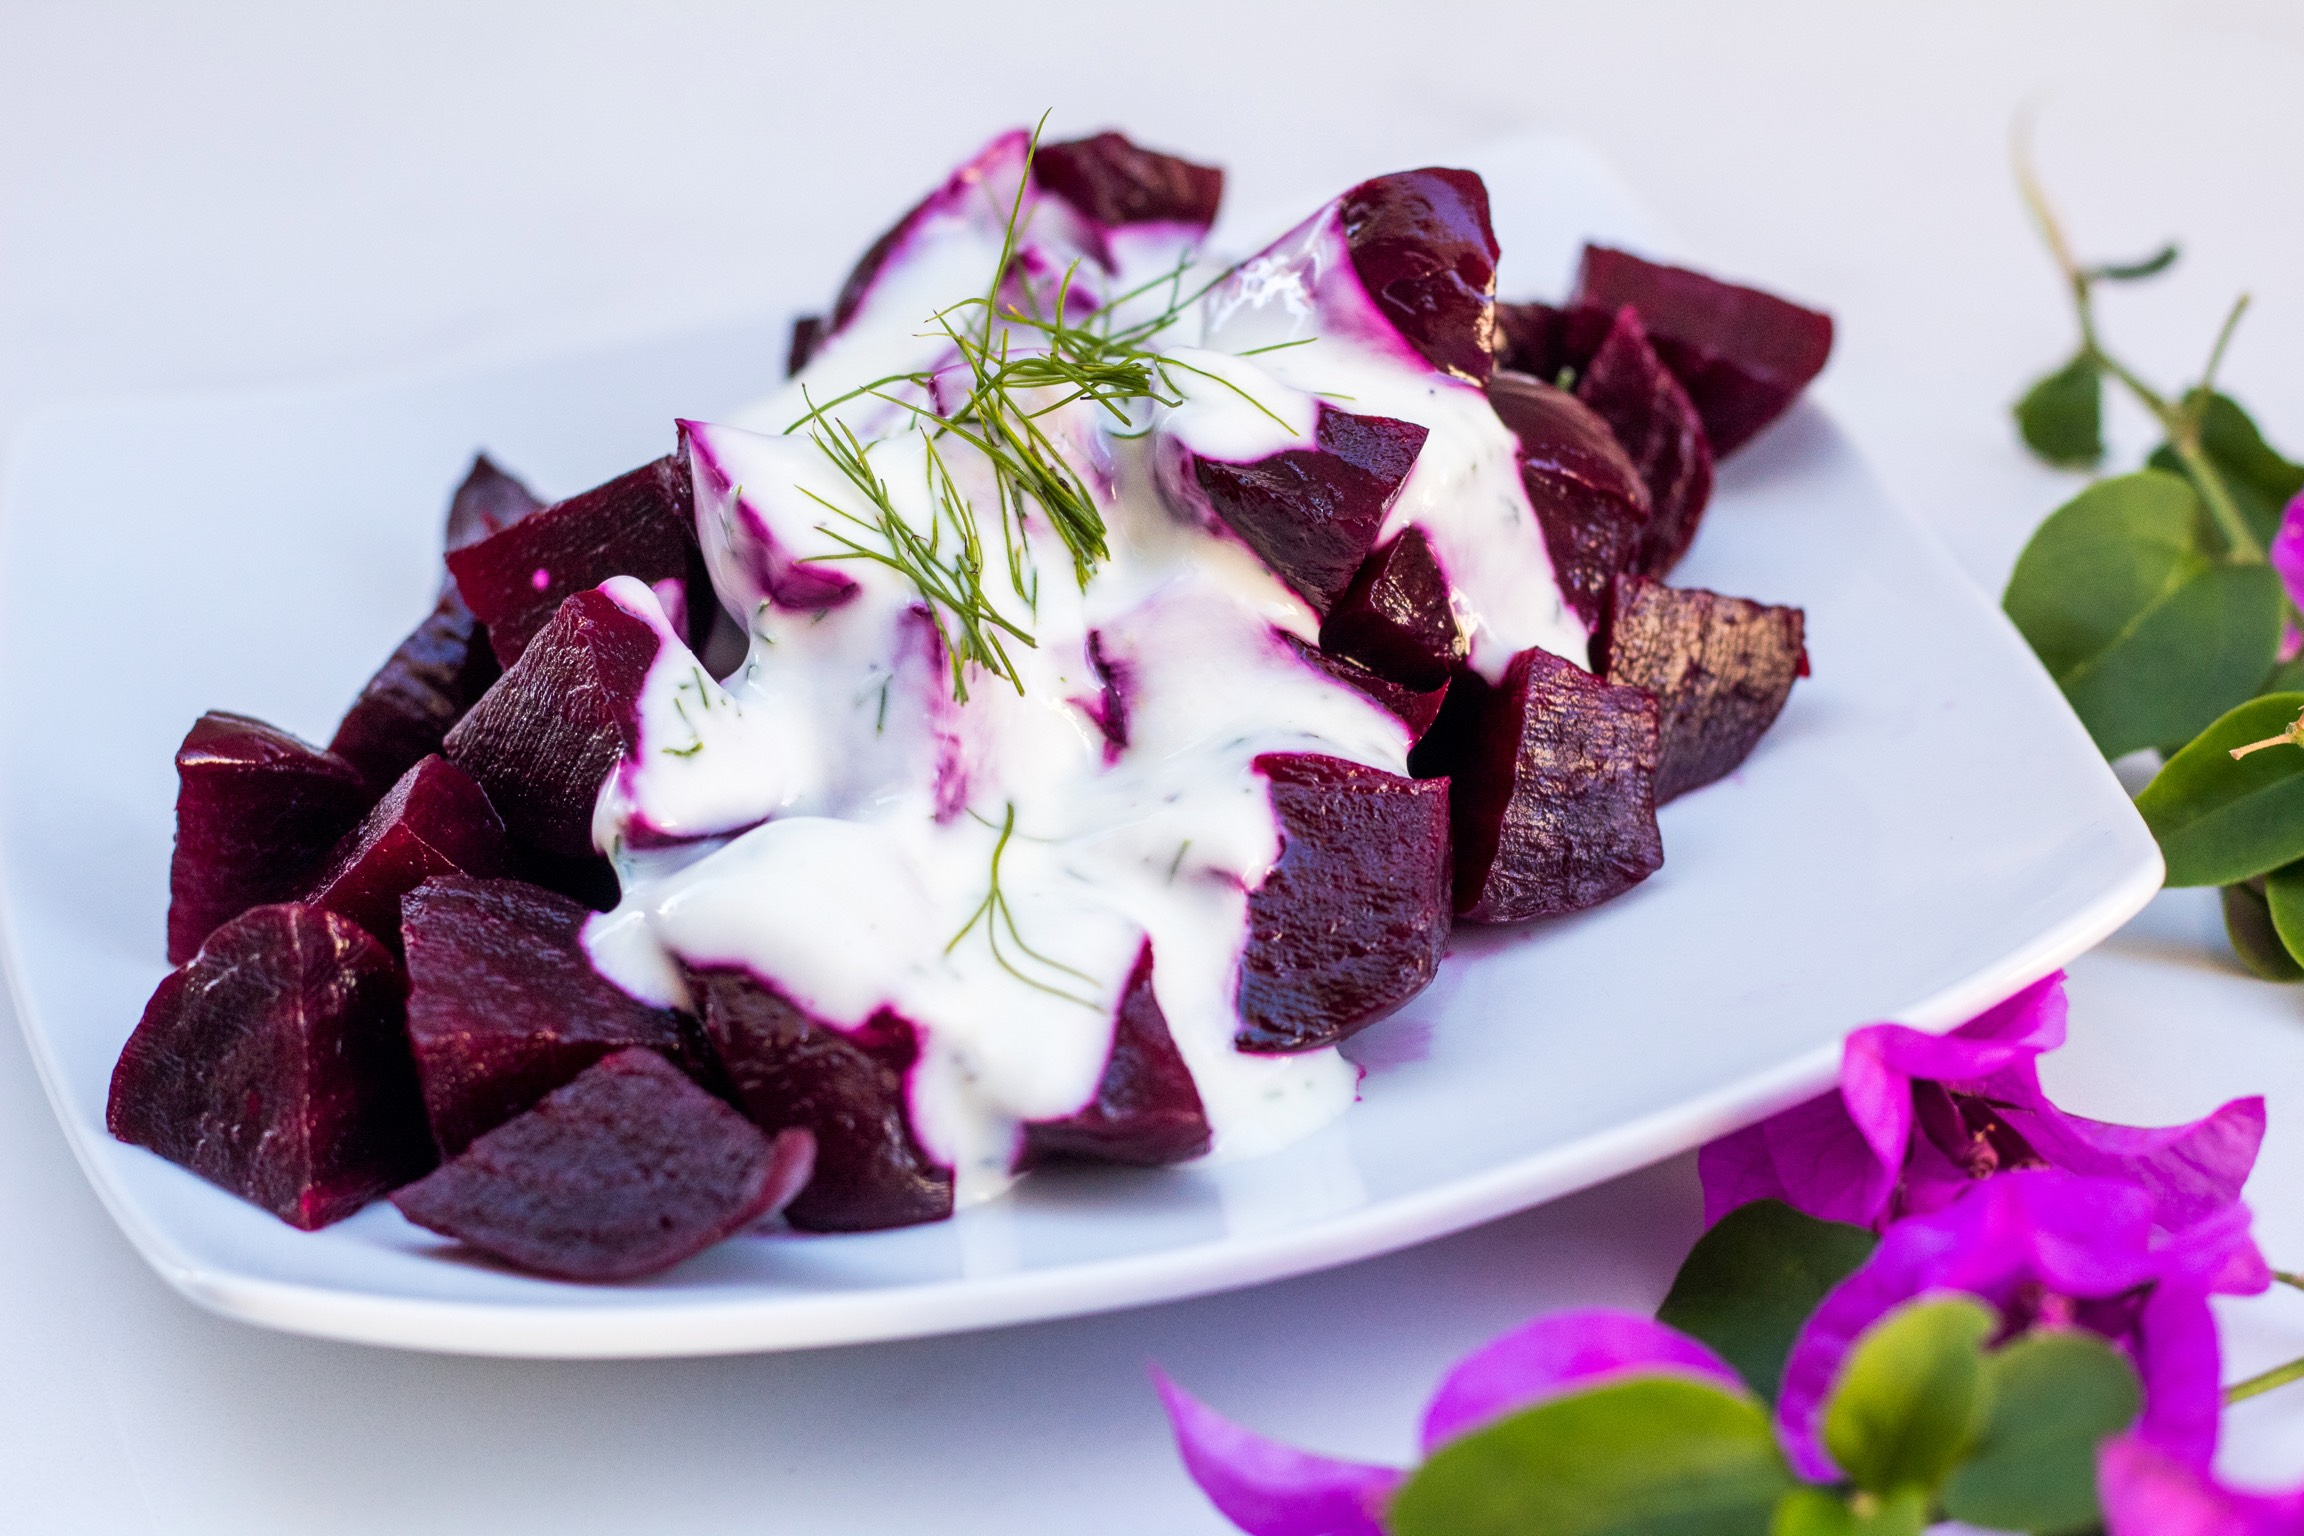 Greek beet salad with a creamy yoghurt dressing (panzarosalata)